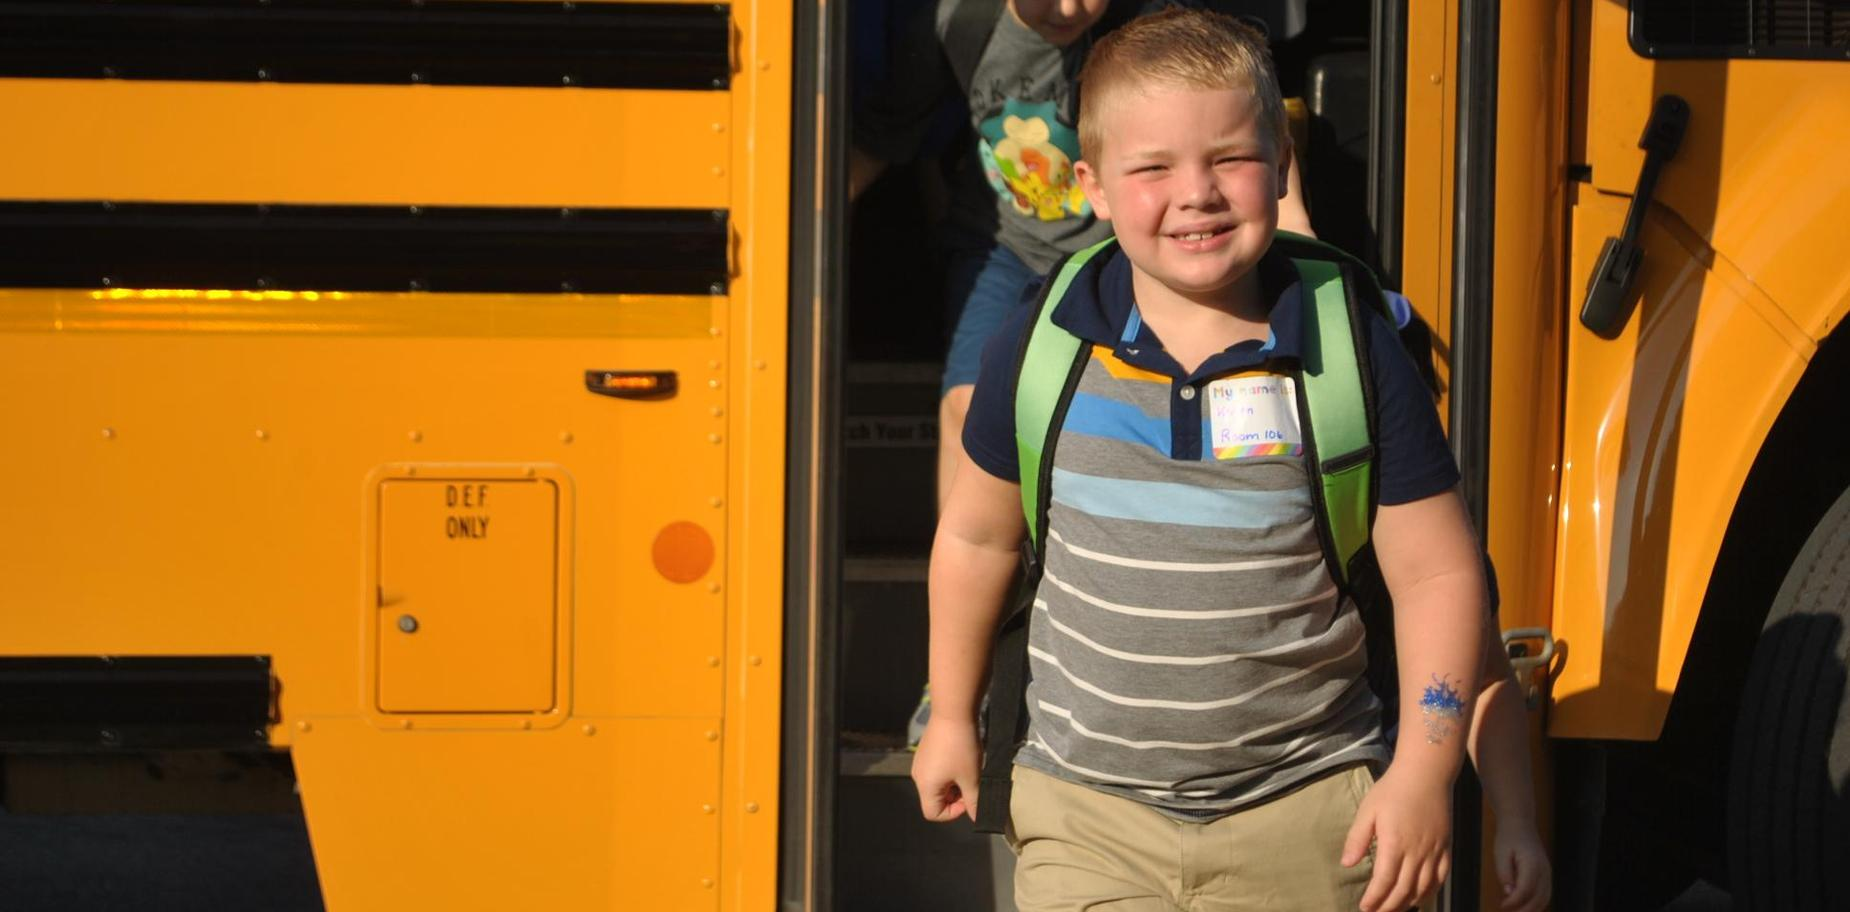 SBPS Student arriving on first day